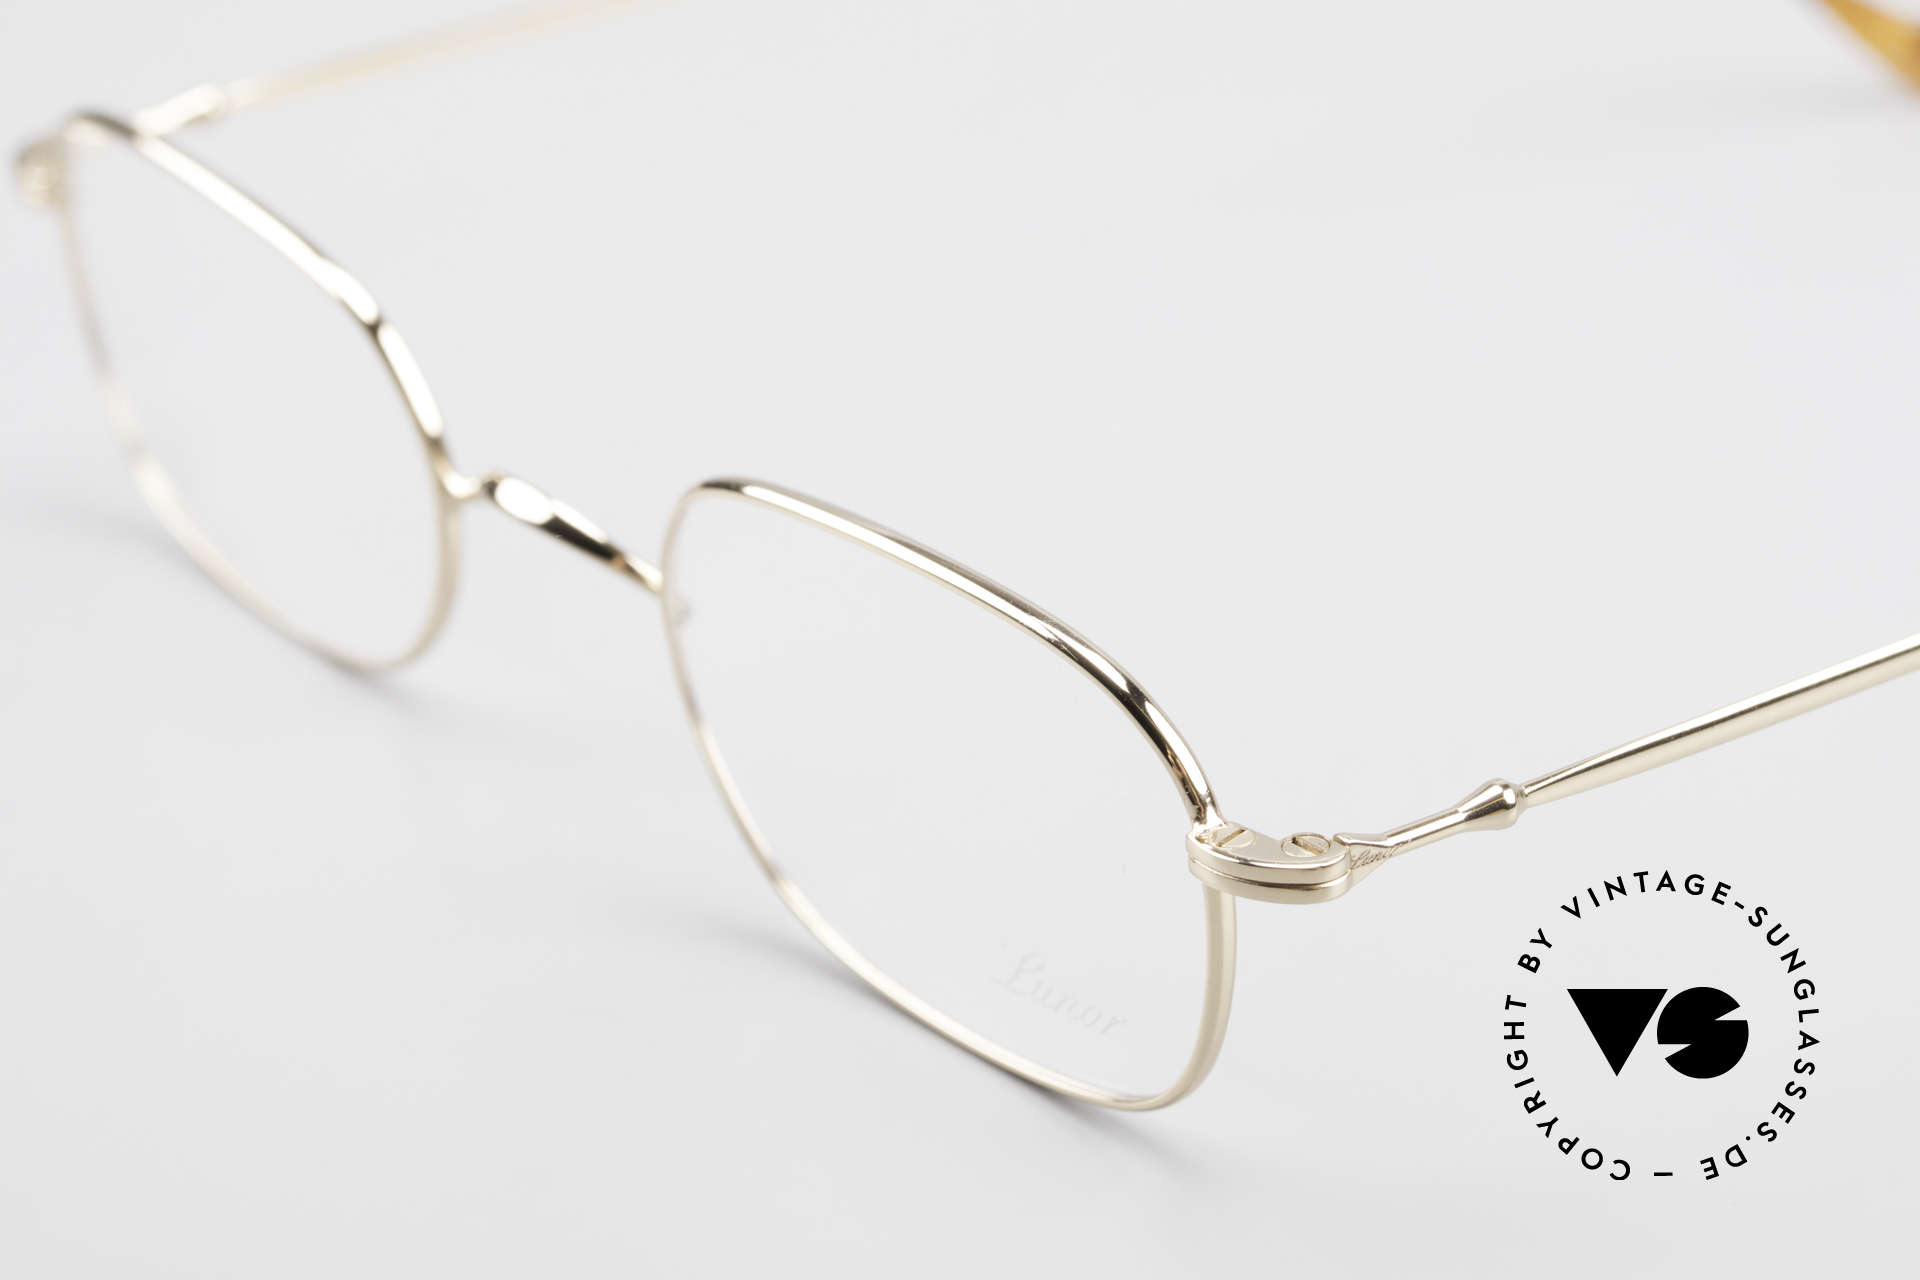 Lunor 322 Classic Vintage Eyeglasses 90s, unworn RARITY (for all lovers of quality) from app. 1998, Made for Men and Women